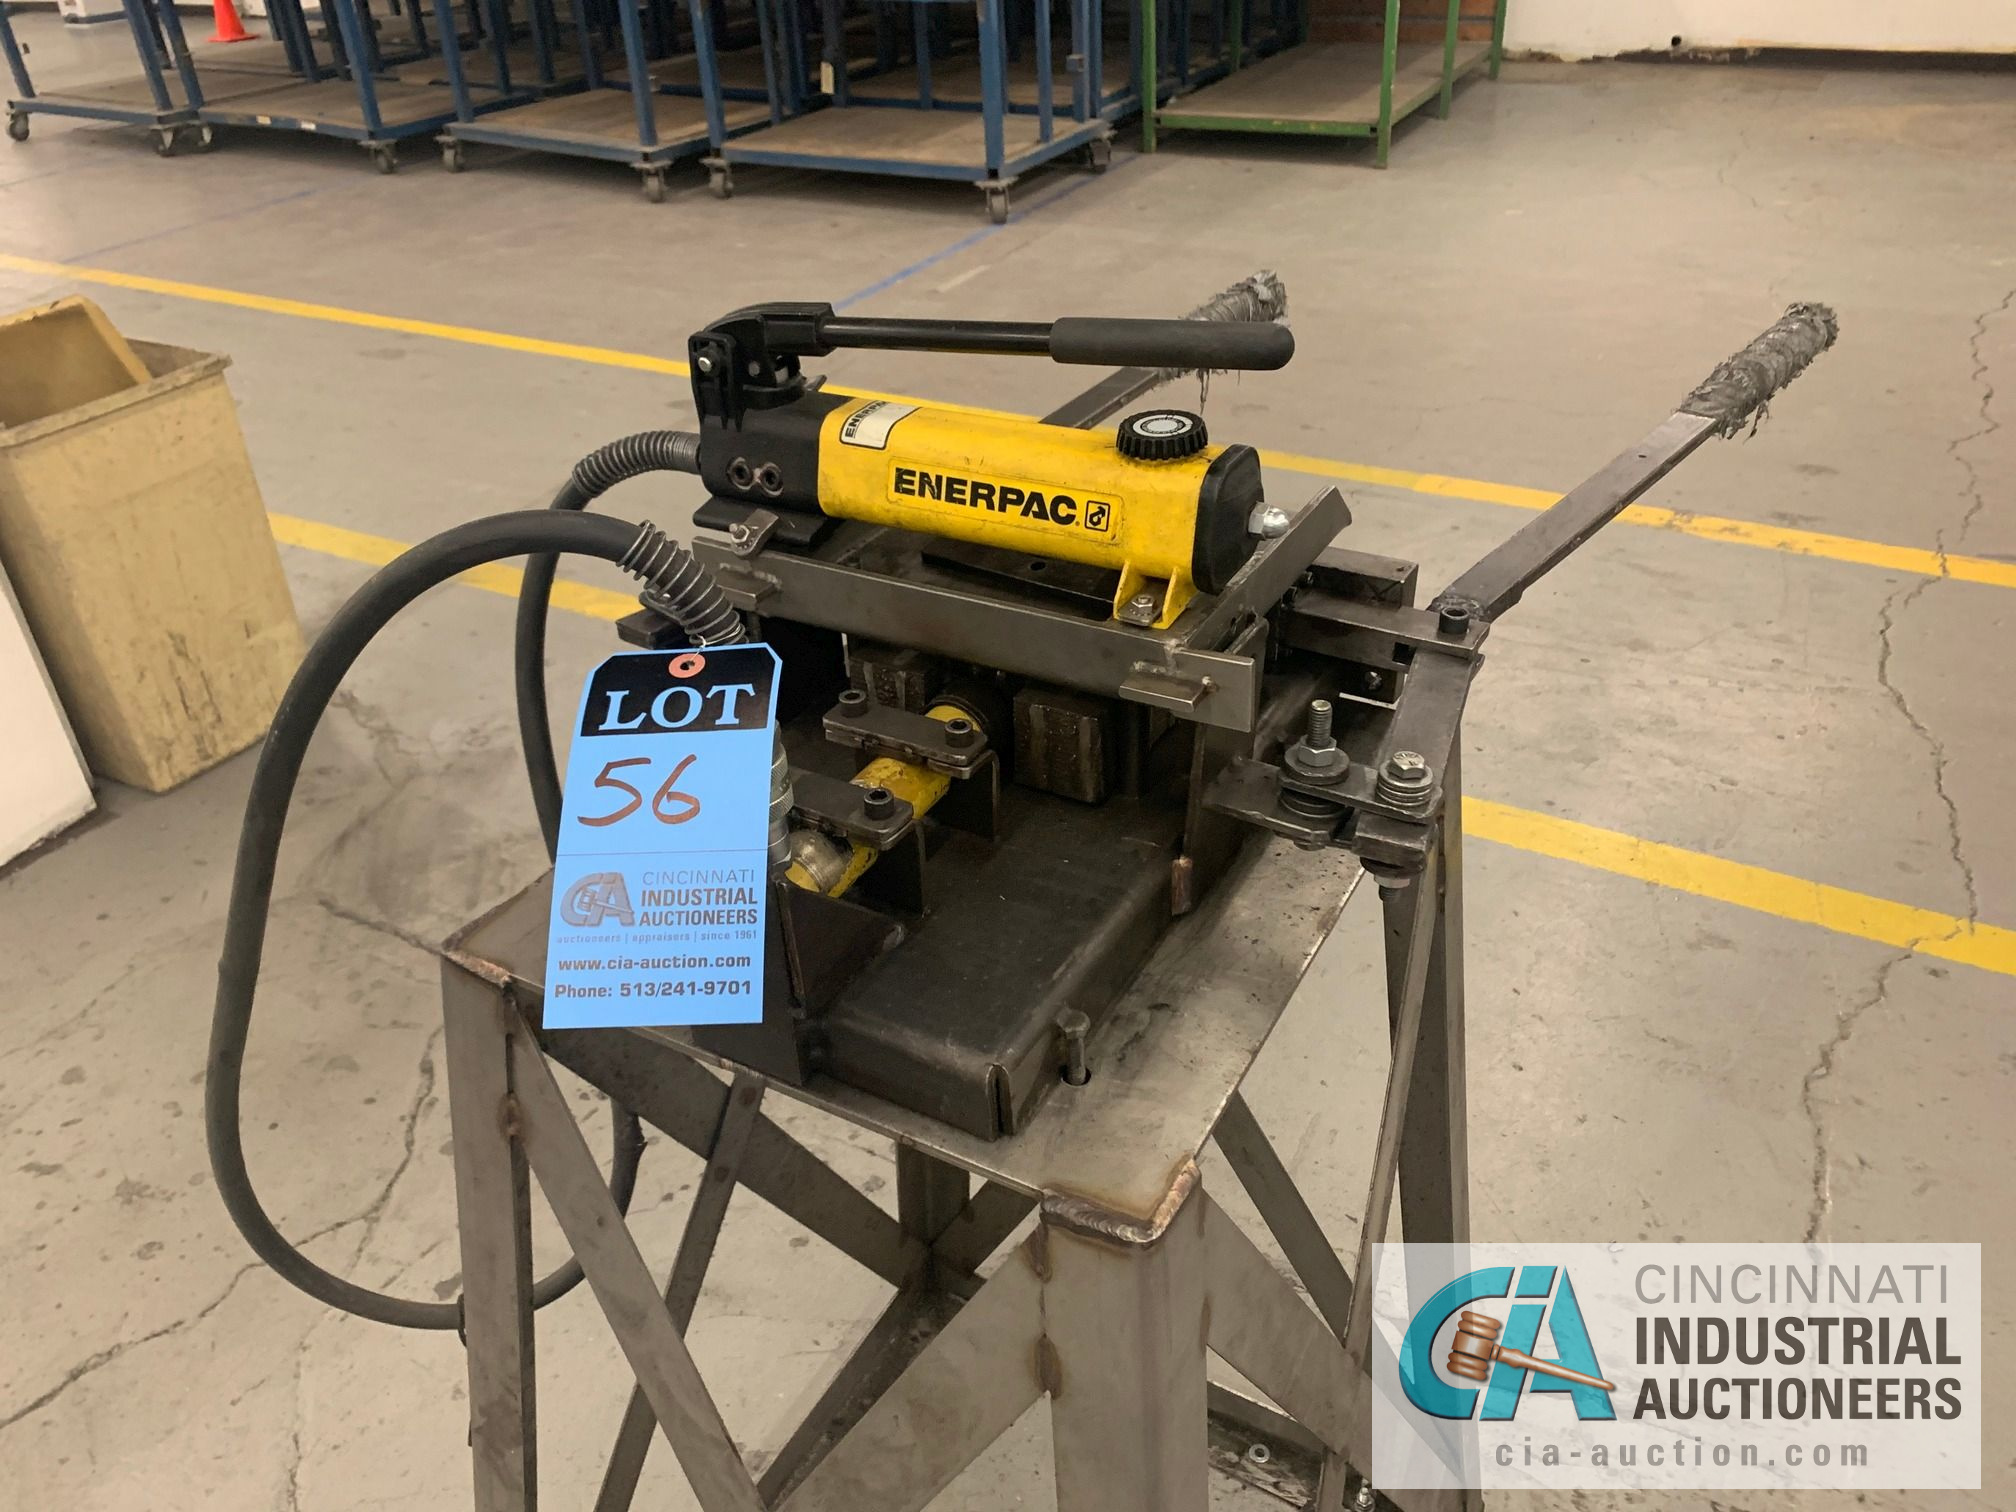 CUSTOM BUILT FORMING MACHINE AND ENERPAC HAND PUNCH